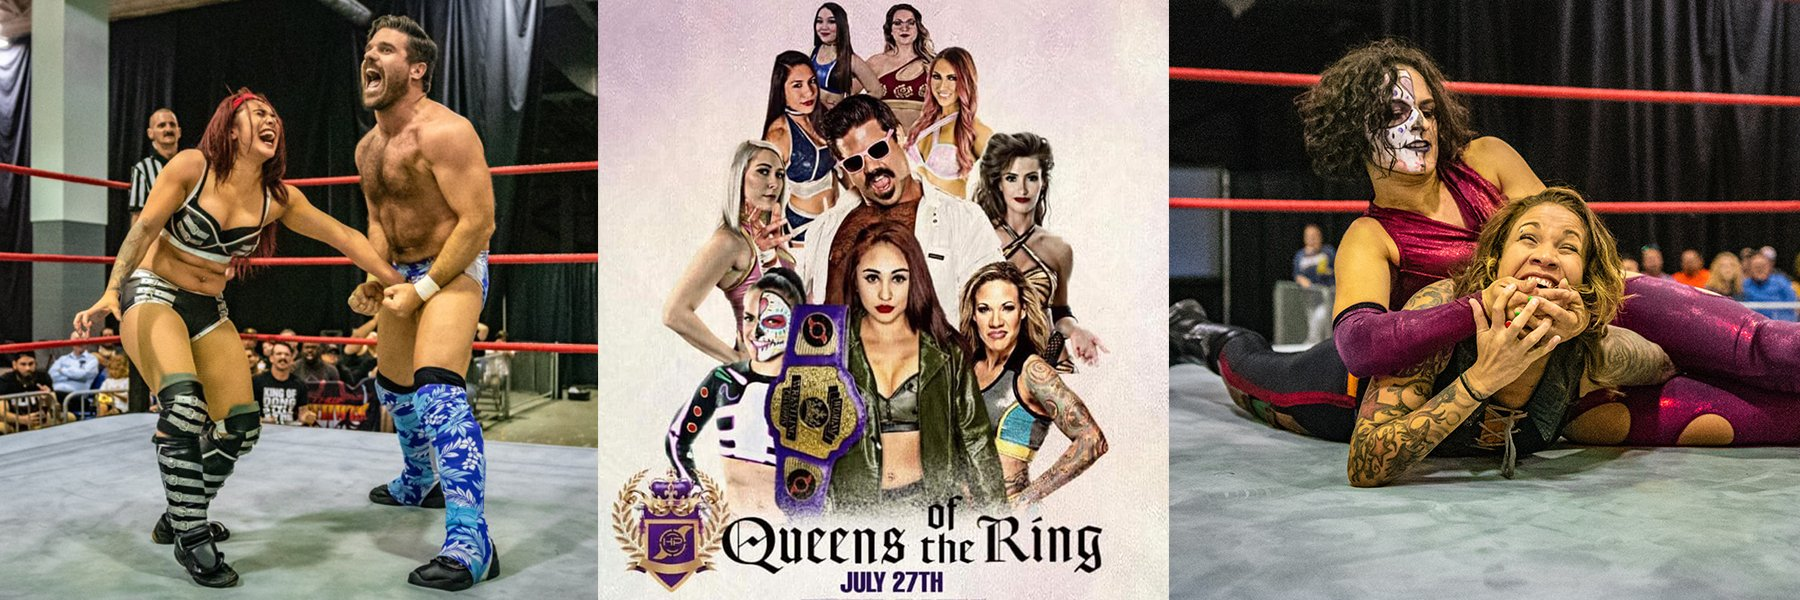 WATCH: Queens of the Ring iPPV - Miranda, Joey Ryan, Mercedes, Thunder Rosa